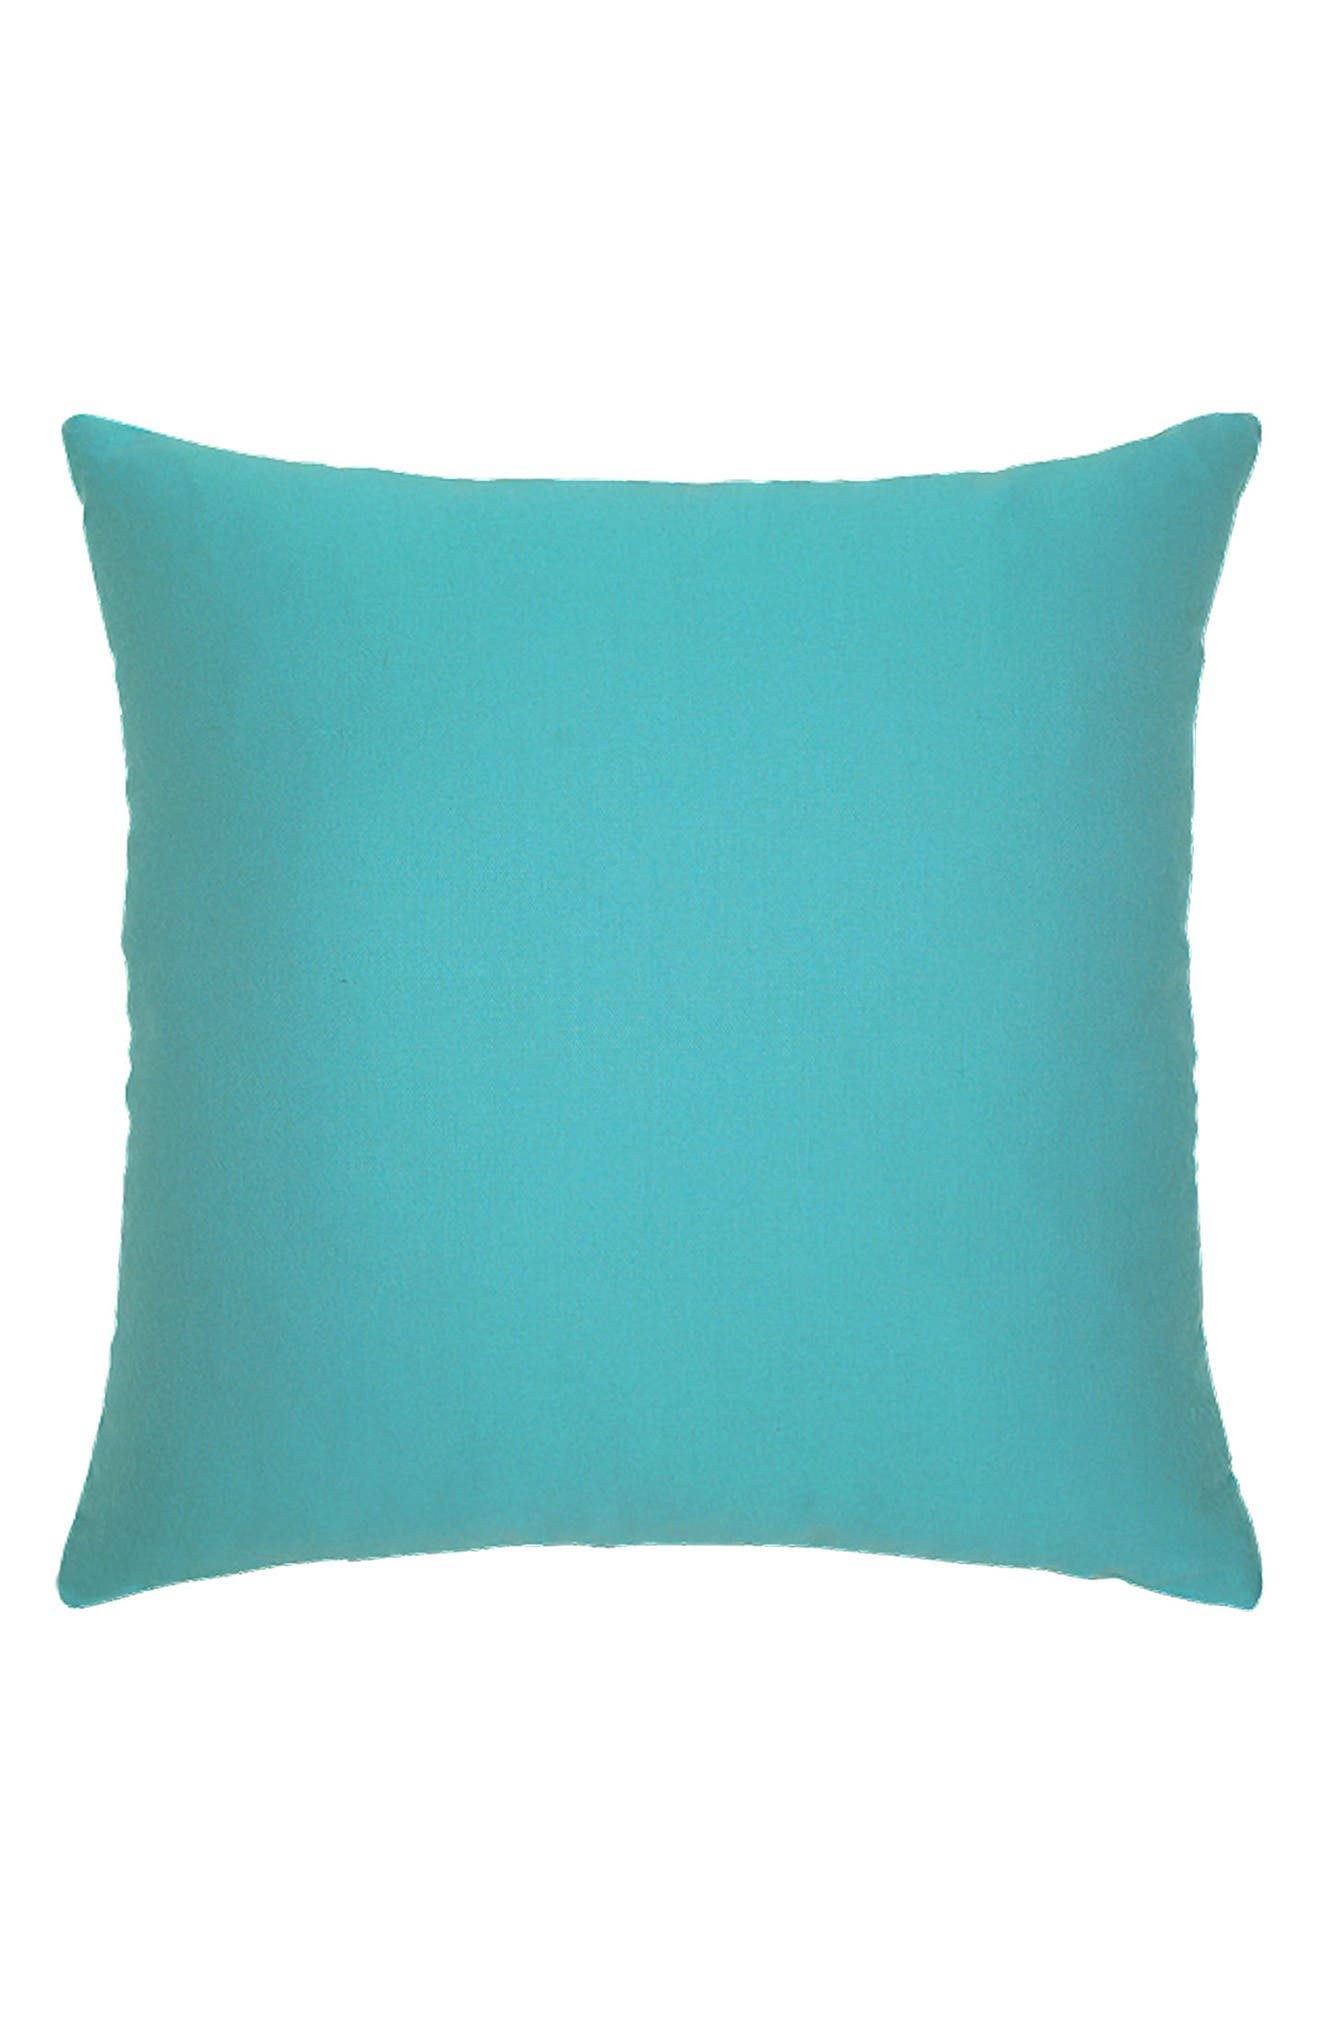 Basket Weave Indoor/Outdoor Accent Pillow,                             Alternate thumbnail 2, color,                             Blue